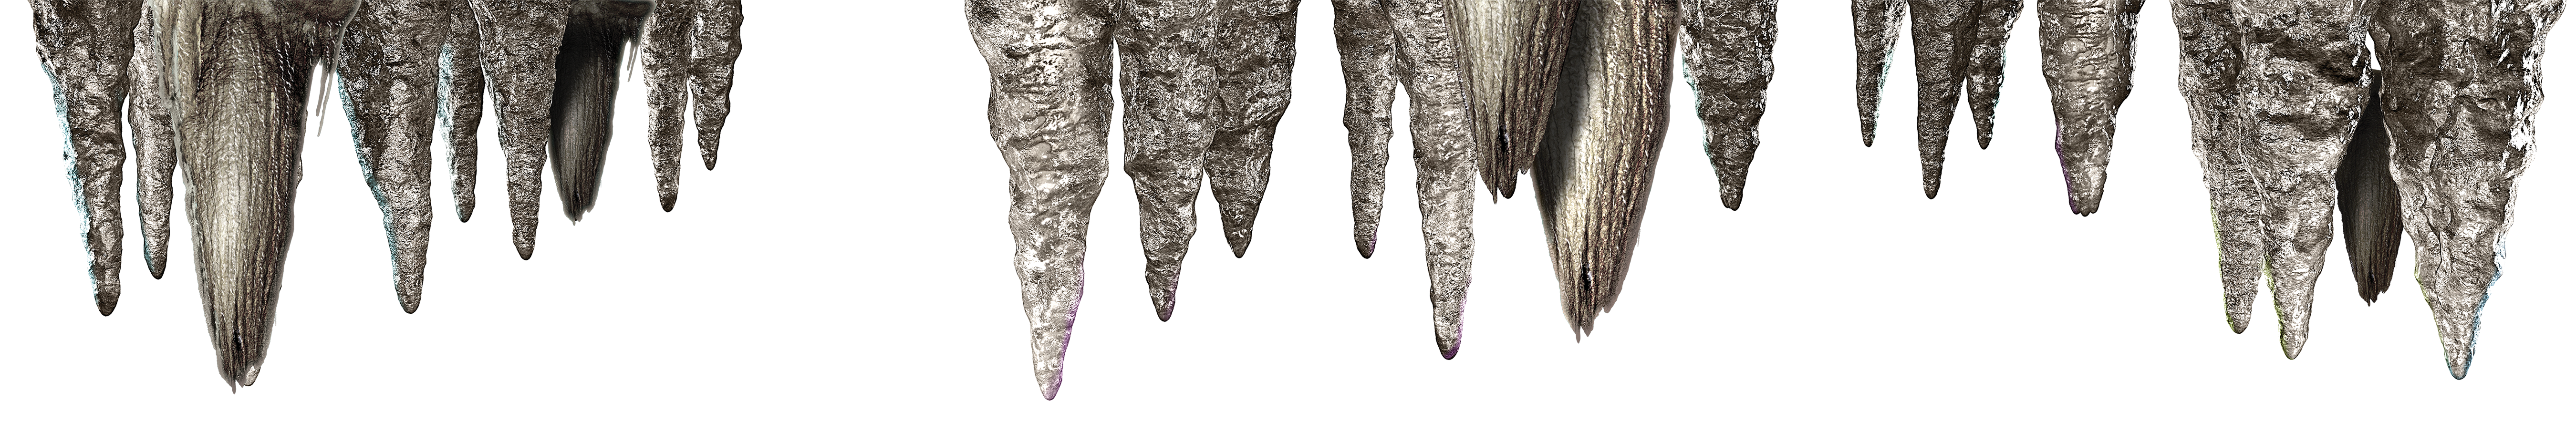 Free Stalactite Cliparts, Download Free Clip Art, Free Clip.